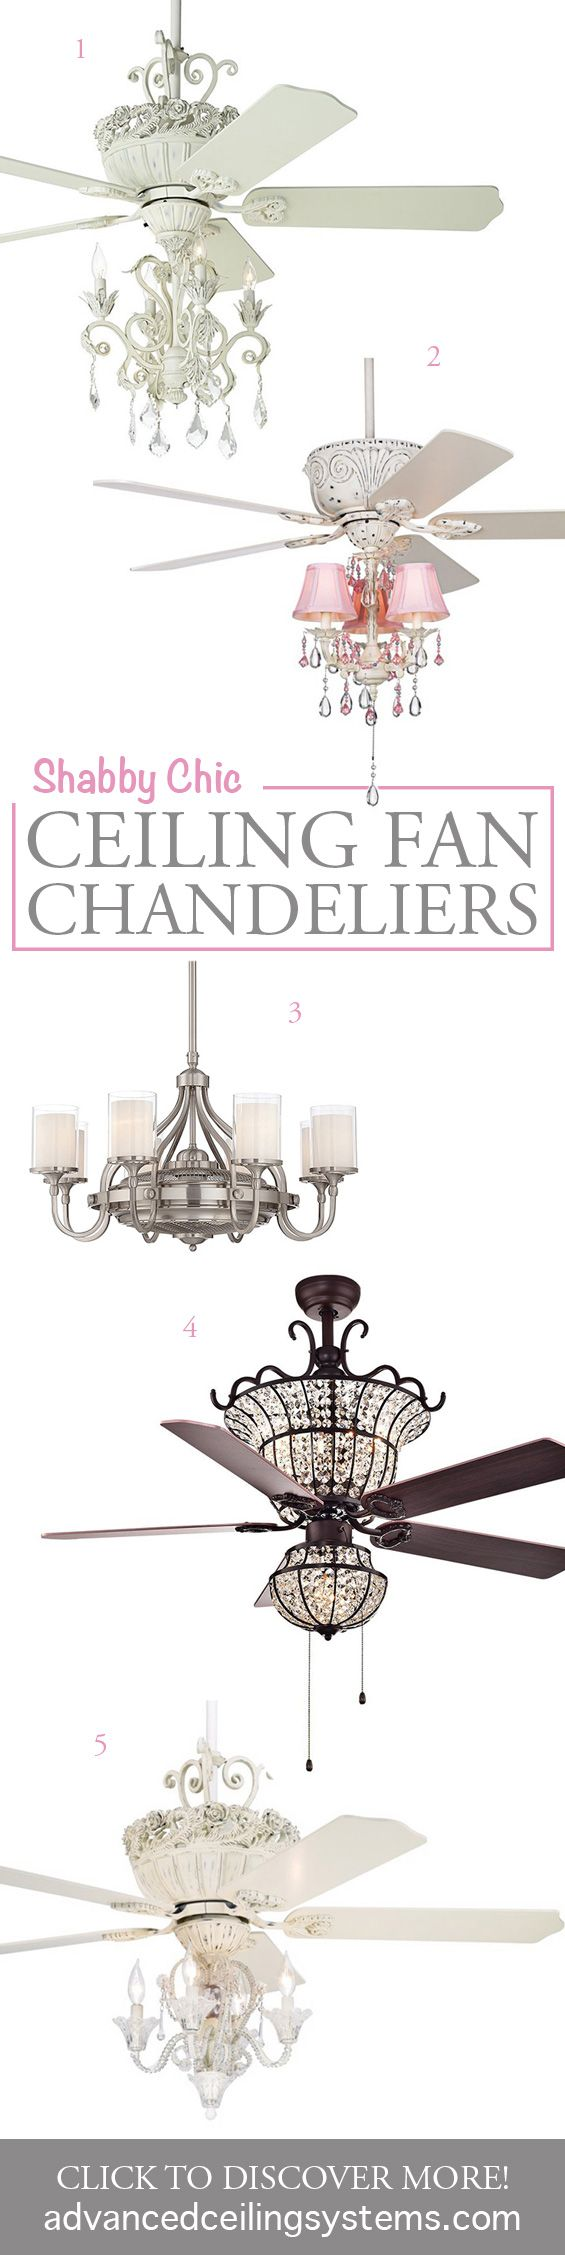 5 unique shabby chic ceiling fan chandeliers aloadofball